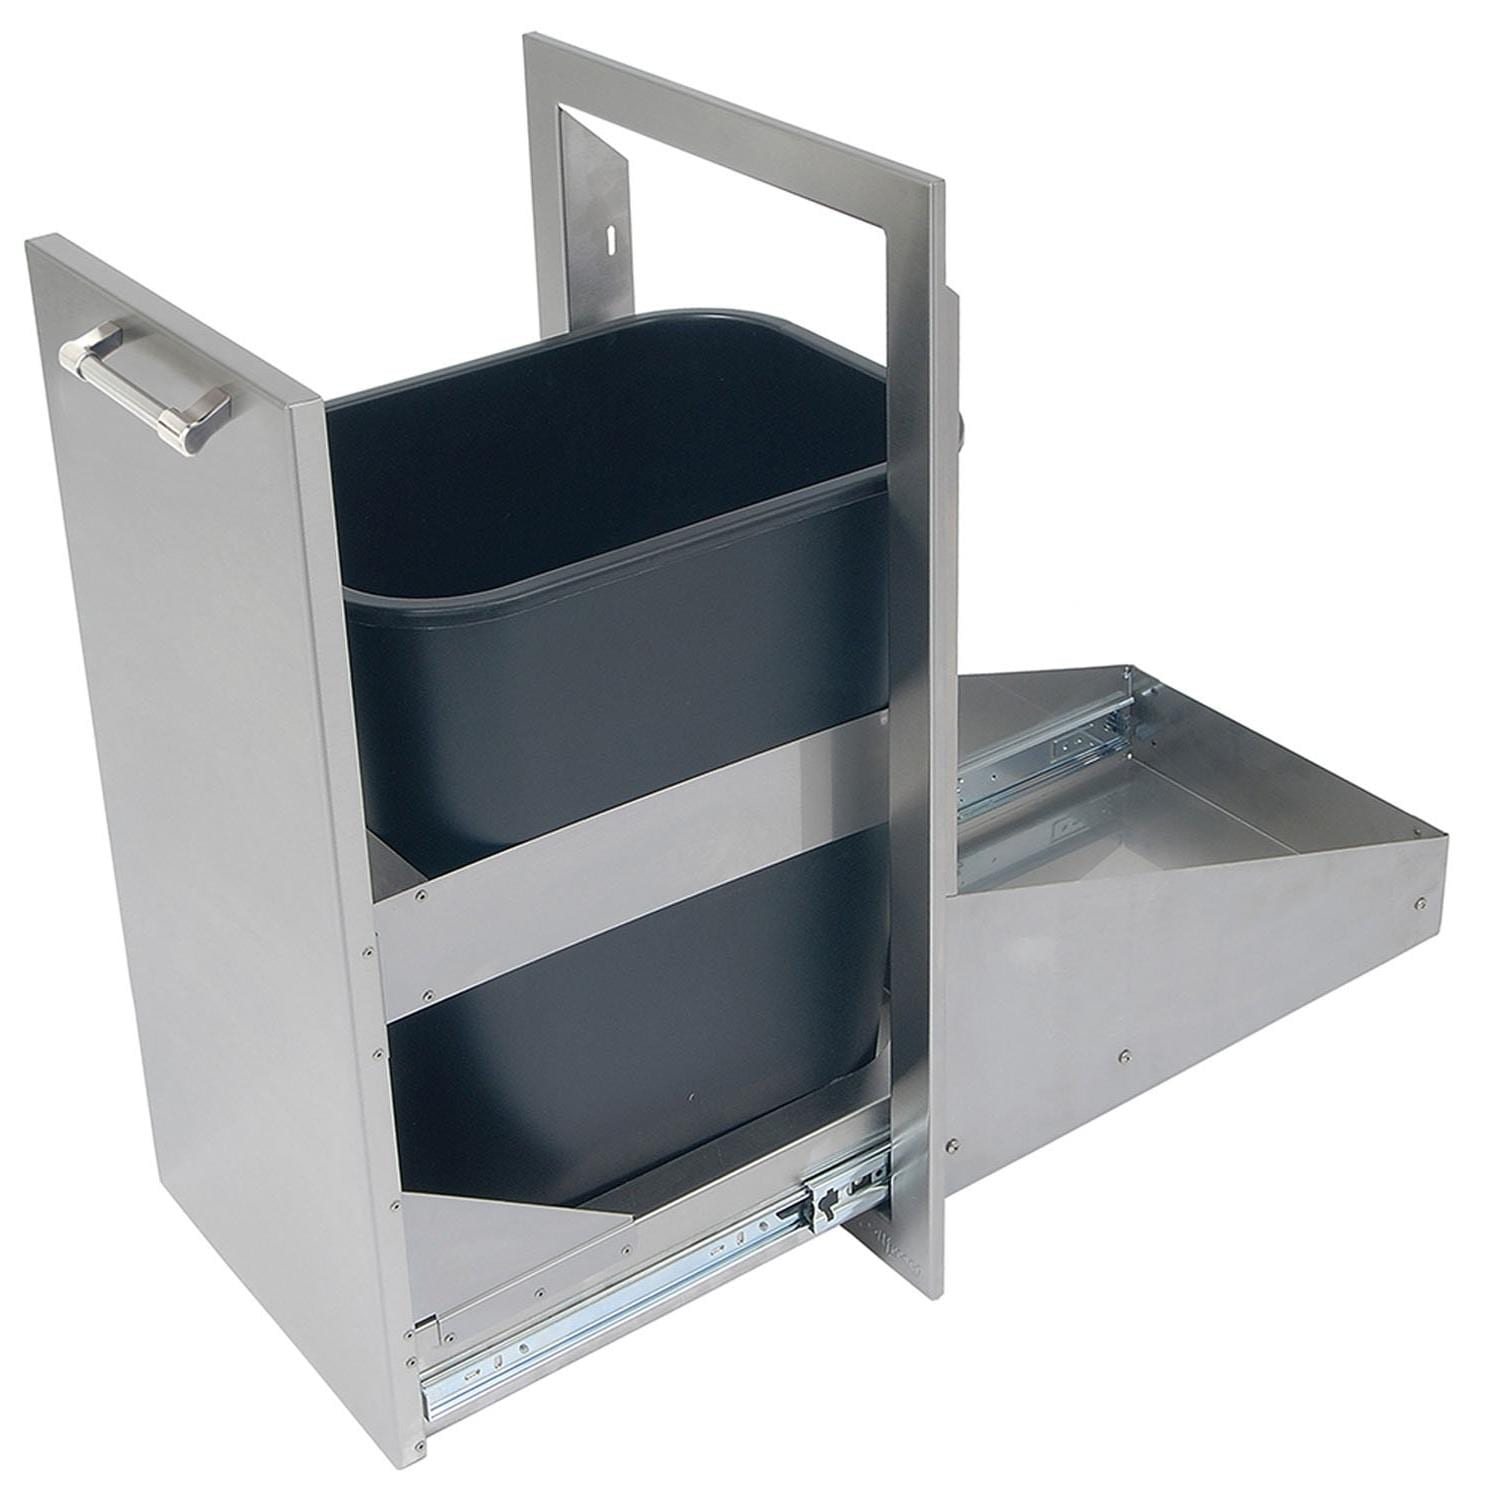 Alfresco 15-Inch Roll-Out Trash Center - Open Door